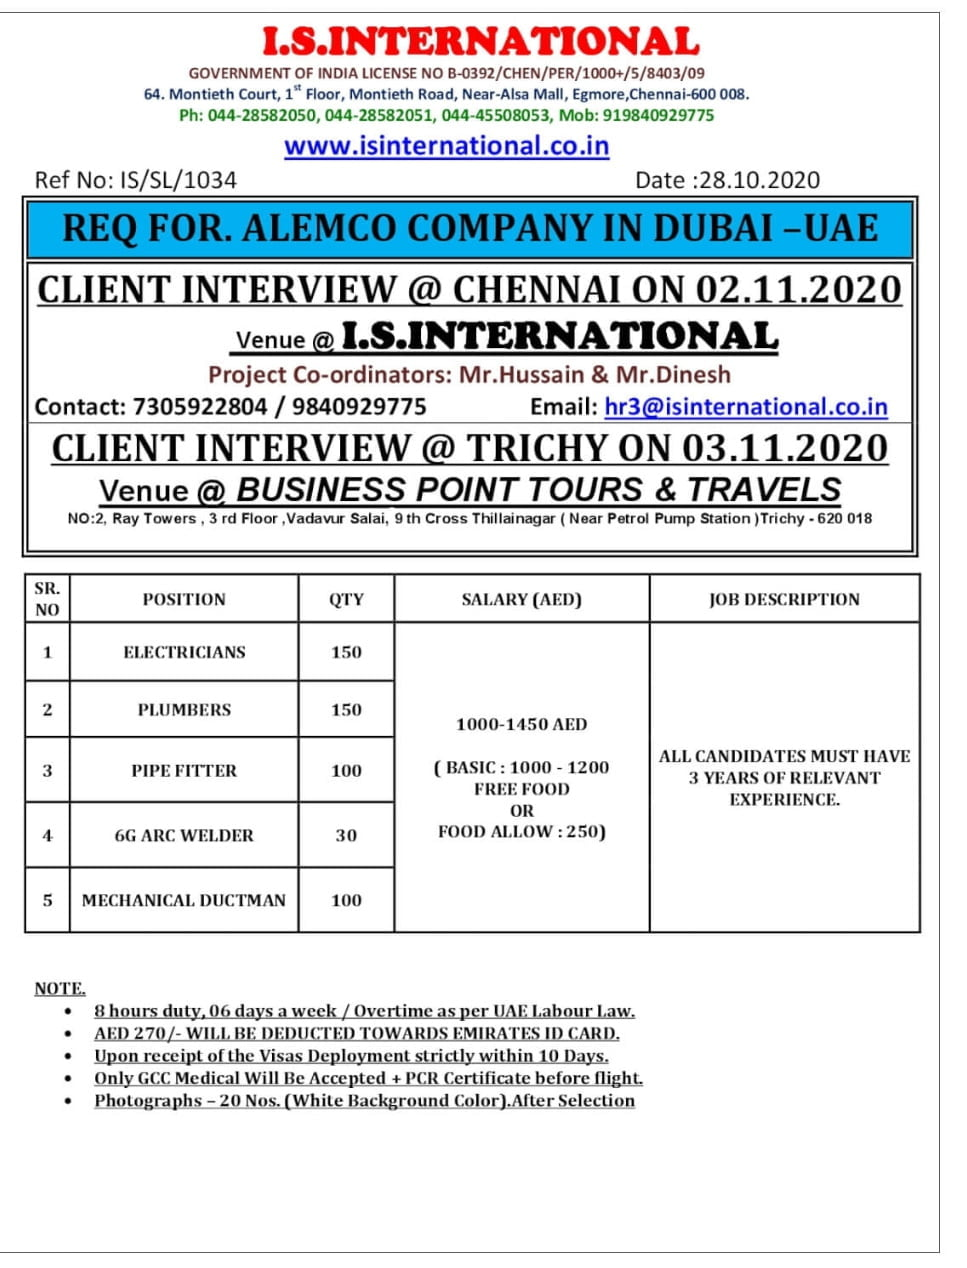 REQUIRED FOR ALEMCO COMPANY IN DUBAI -UAE